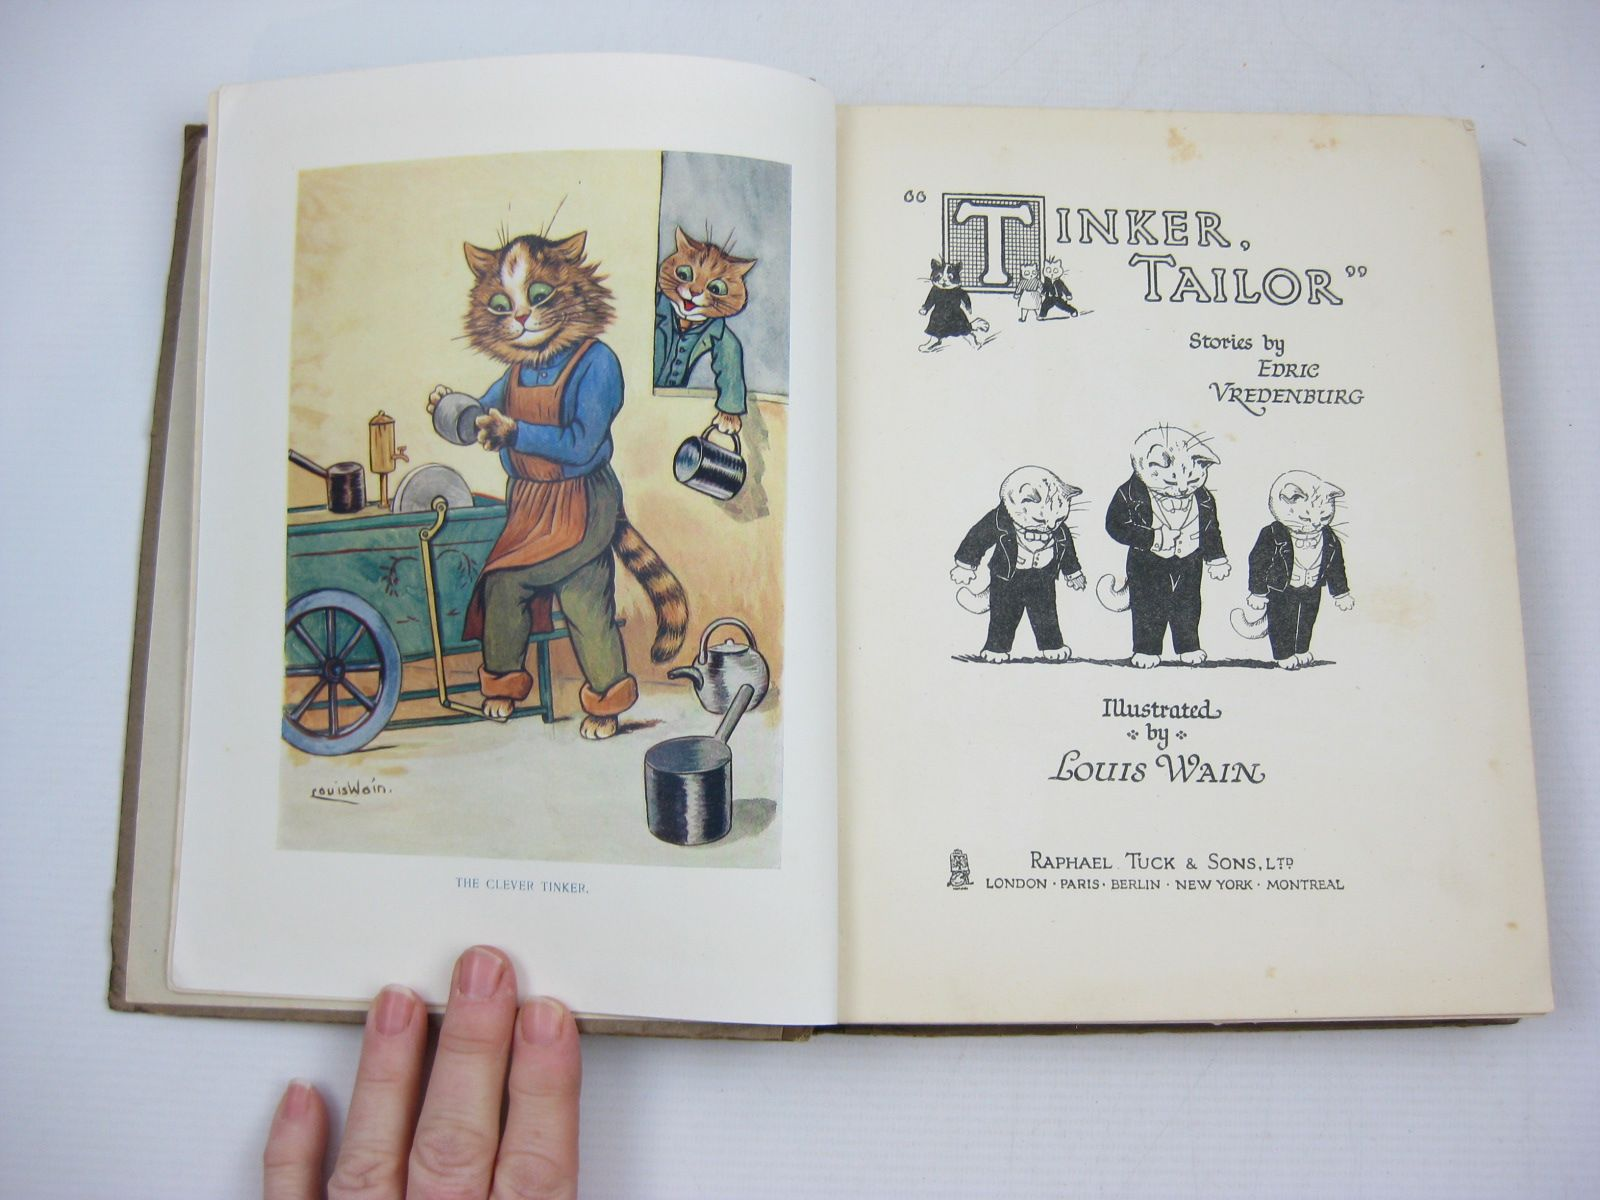 Photo of TINKER, TAILOR written by Vredenburg, Edric illustrated by Wain, Louis published by Raphael Tuck & Sons Ltd. (STOCK CODE: 1314506)  for sale by Stella & Rose's Books